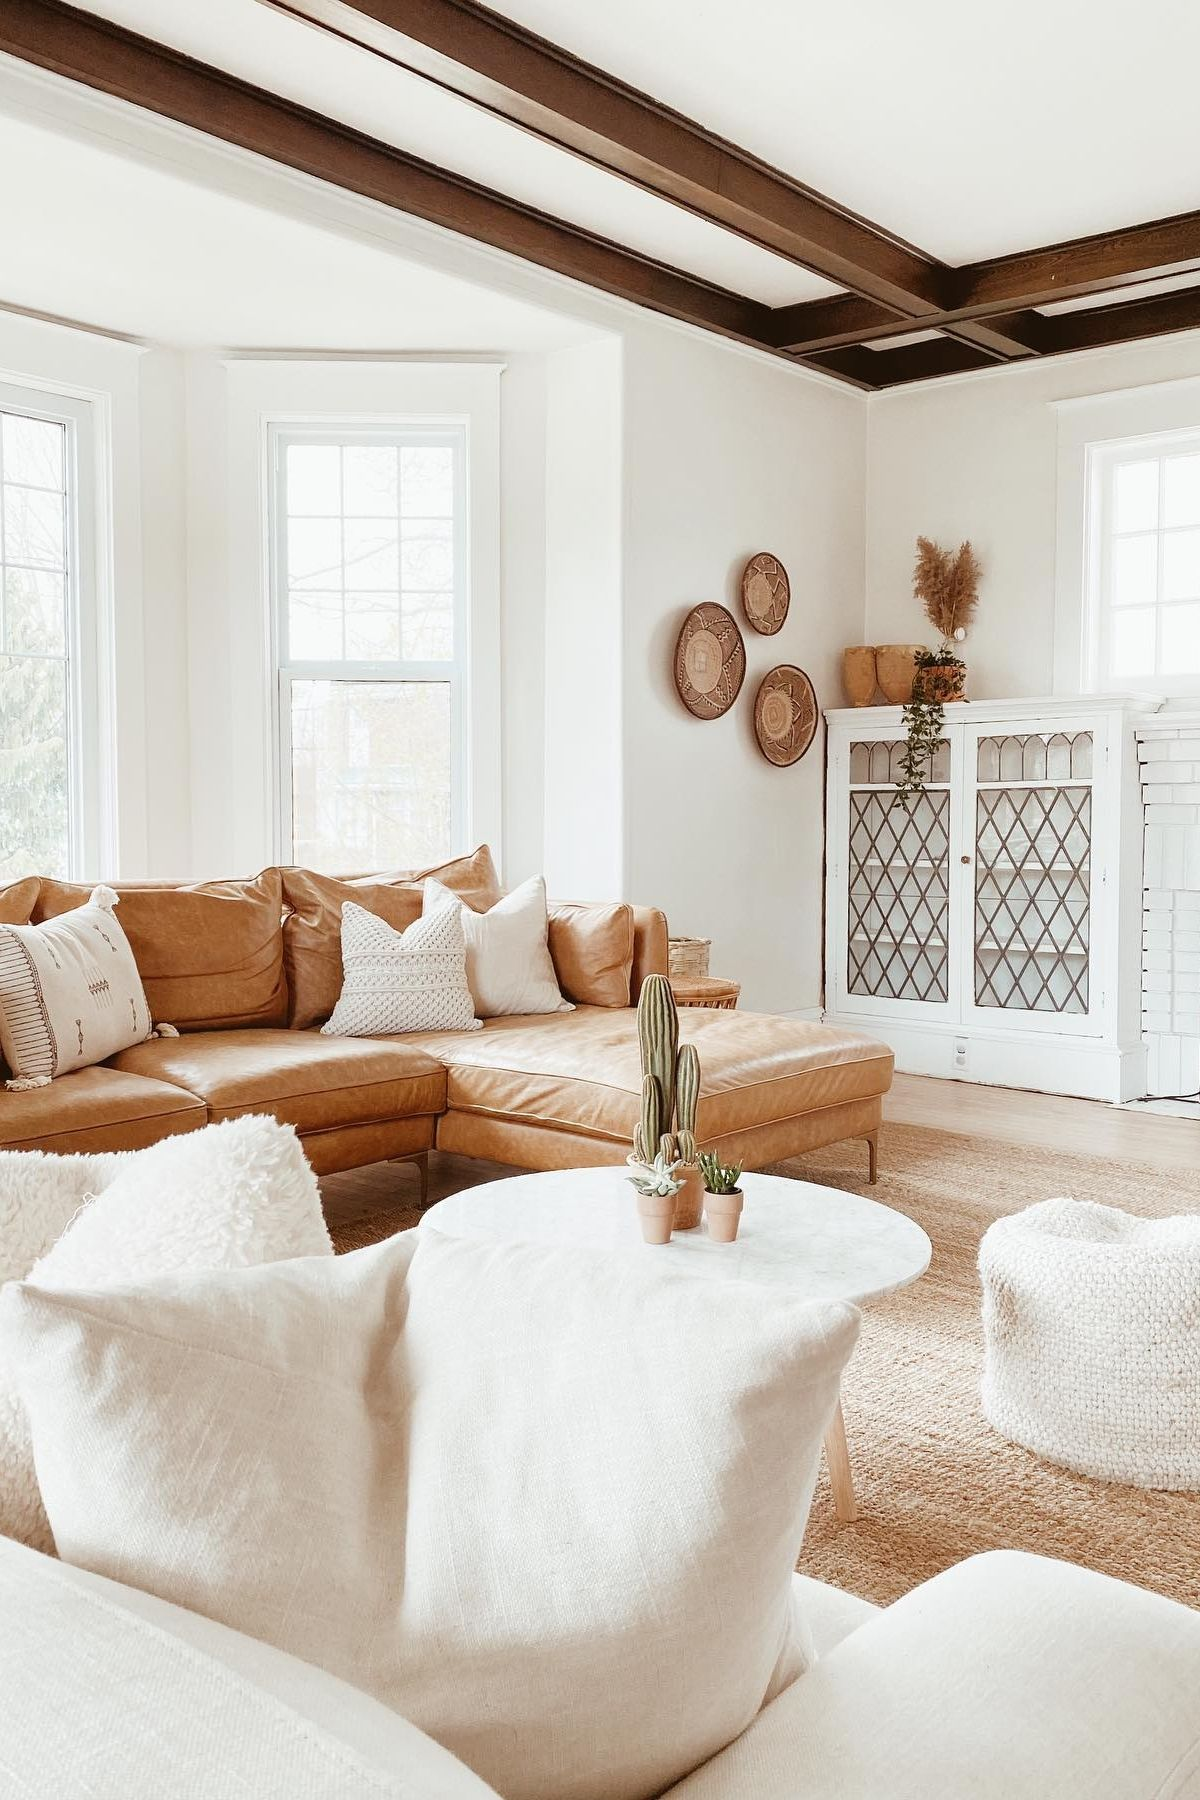 Affordable Home Accessories For Modern Rustic Home Decor Modern Rustic Living Room Modern Rustic Homes House Interior